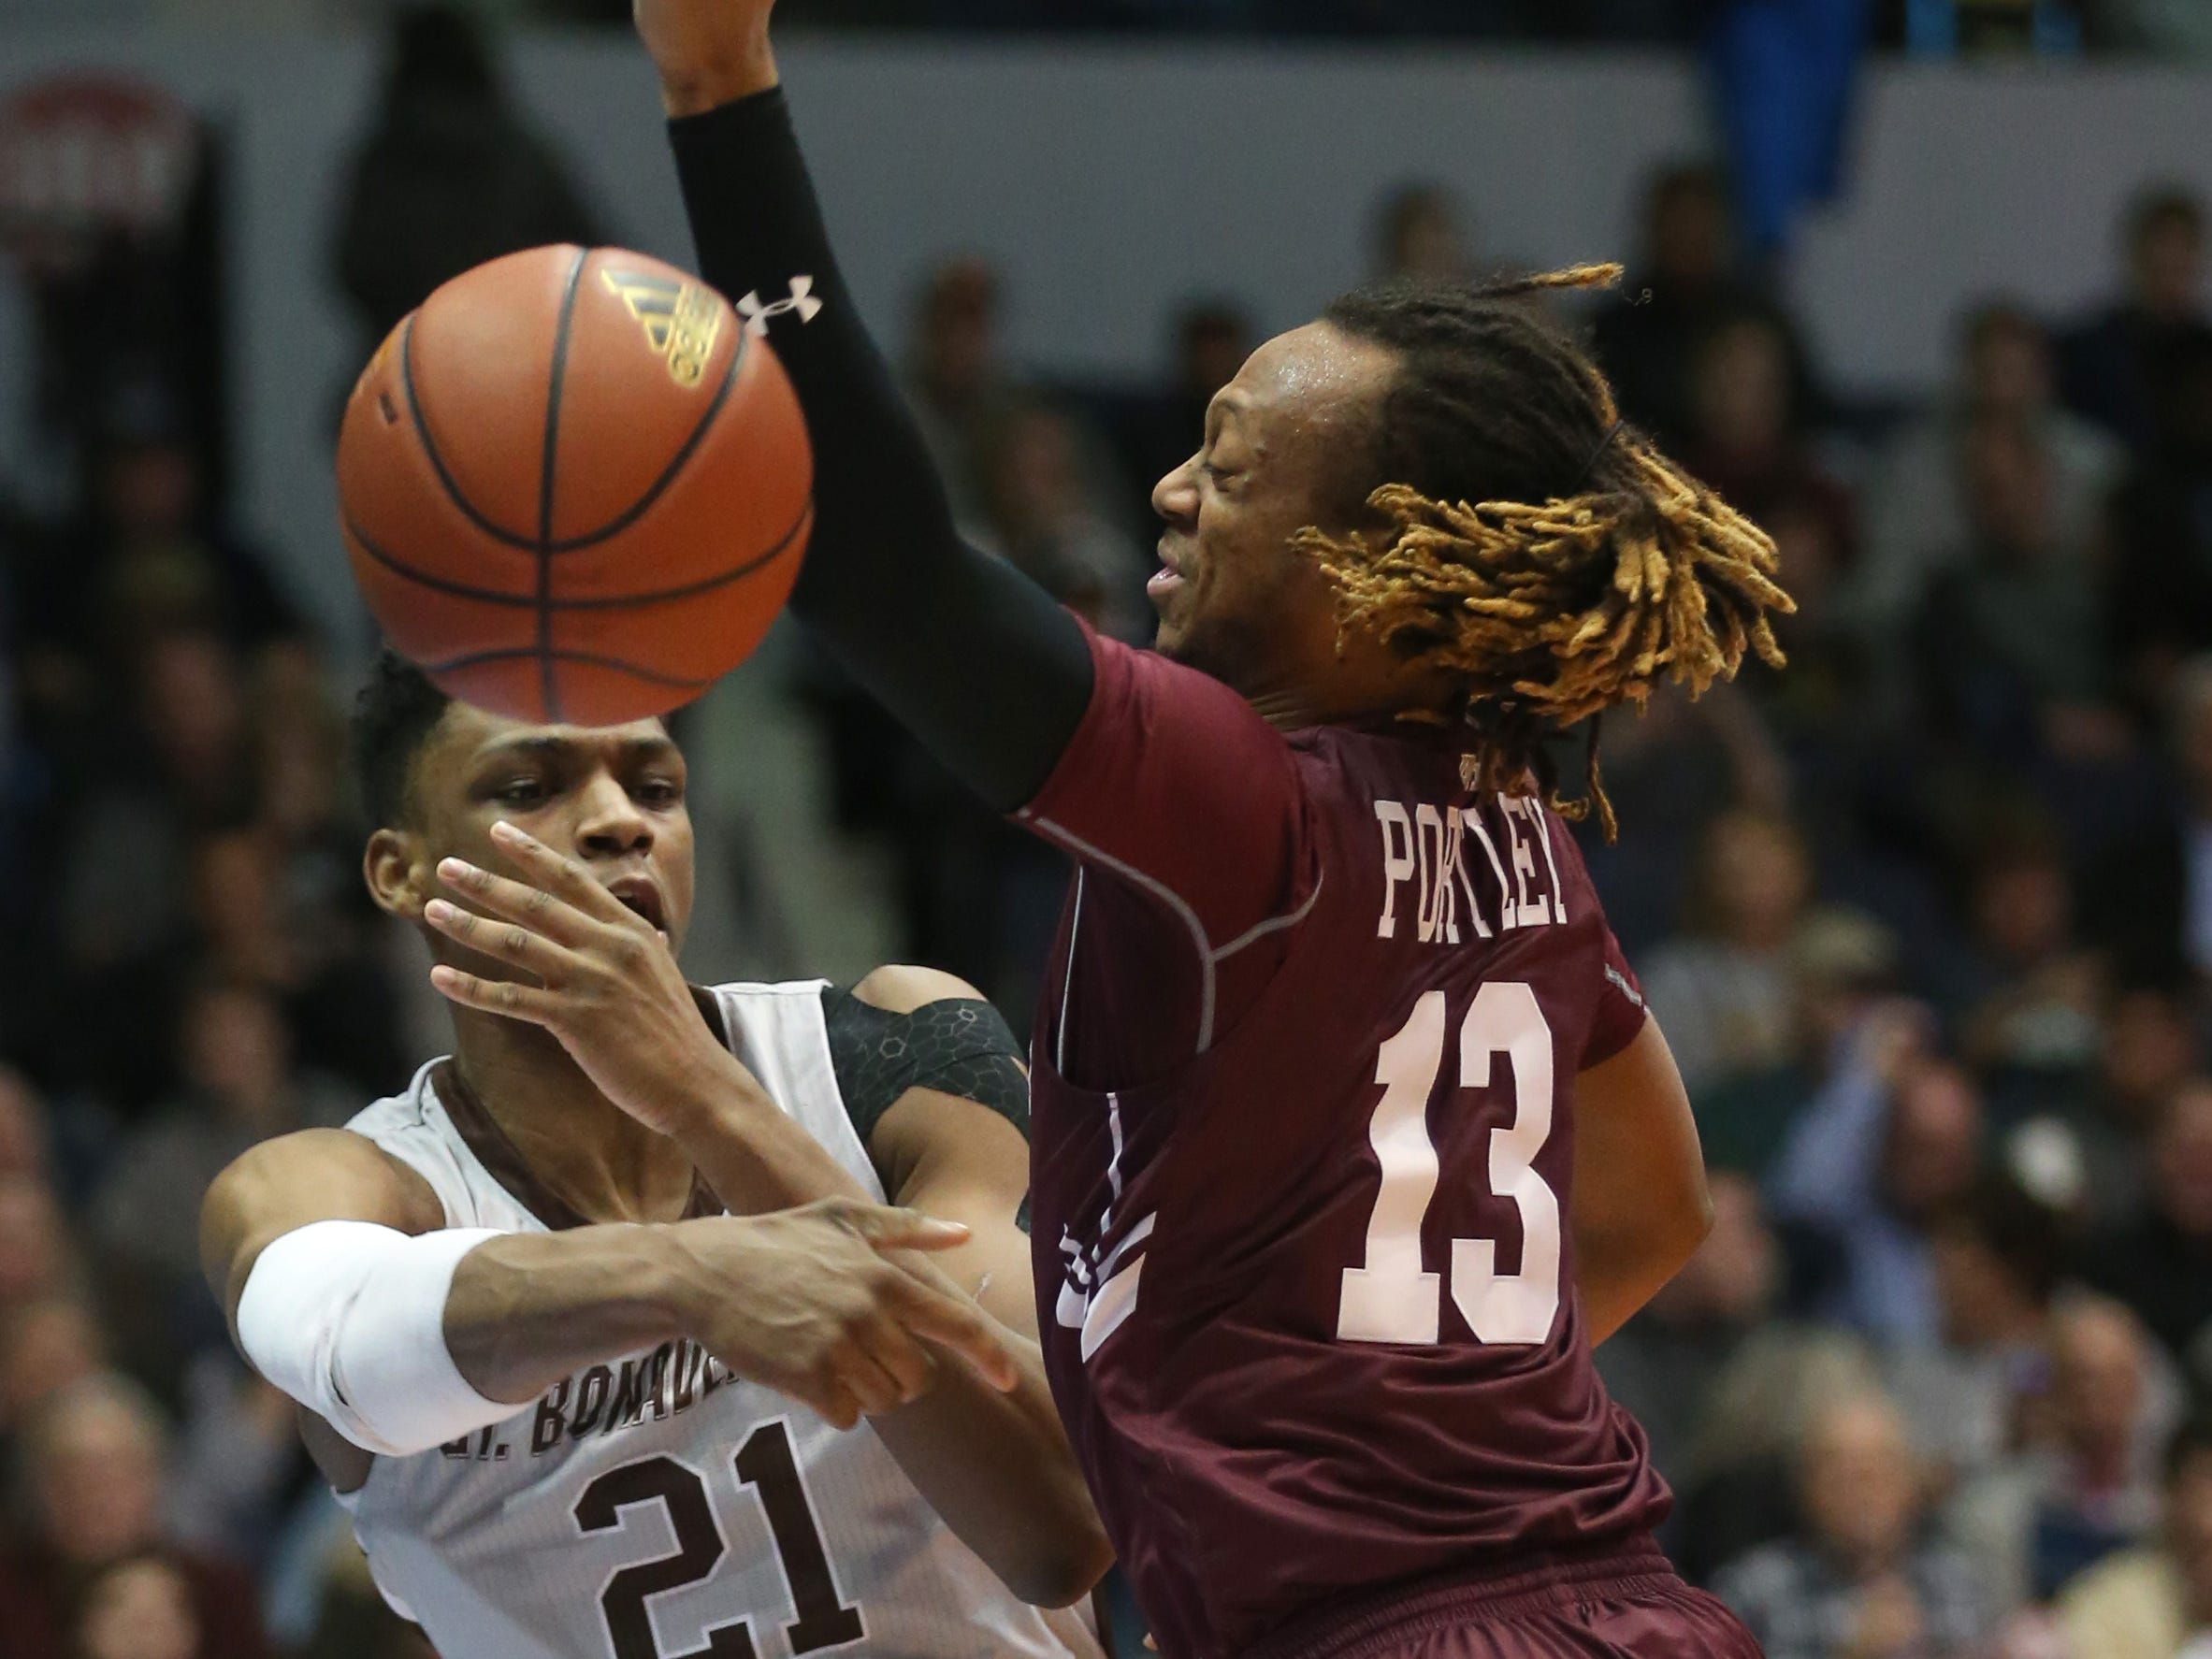 St. Bonaventure's Osun Osunniyi, left, makes a leaping save of the ball, passing it to a teammate around Fordham's Antwon Portley, before going out of bounds.